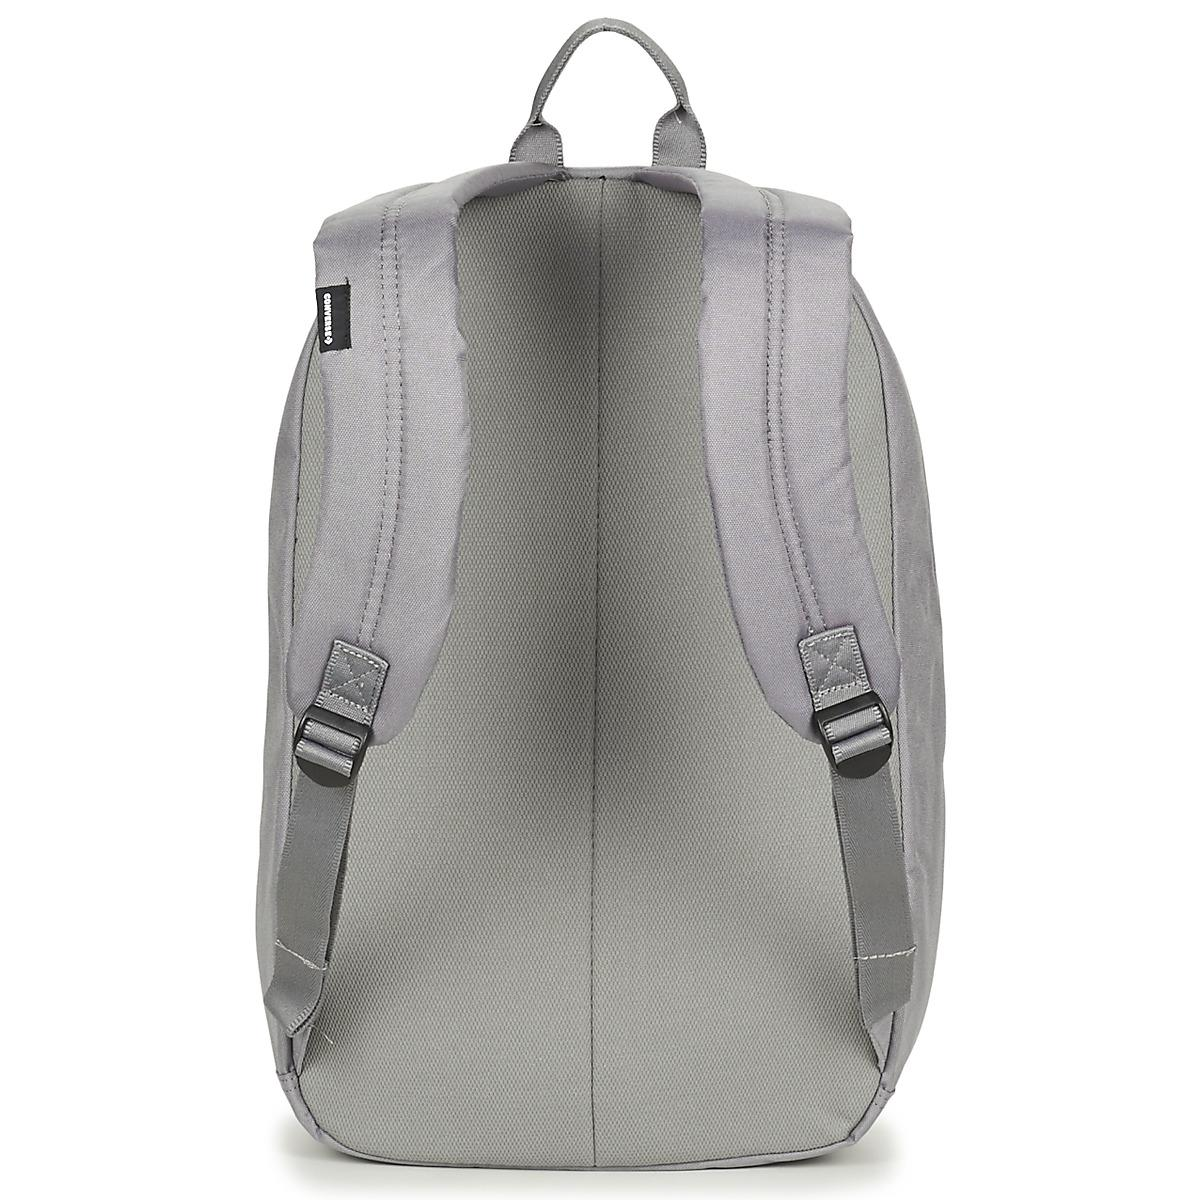 Converse - Gray Edc 22 Backpack Backpack for Men - Lyst. View fullscreen cbc3276c382fe